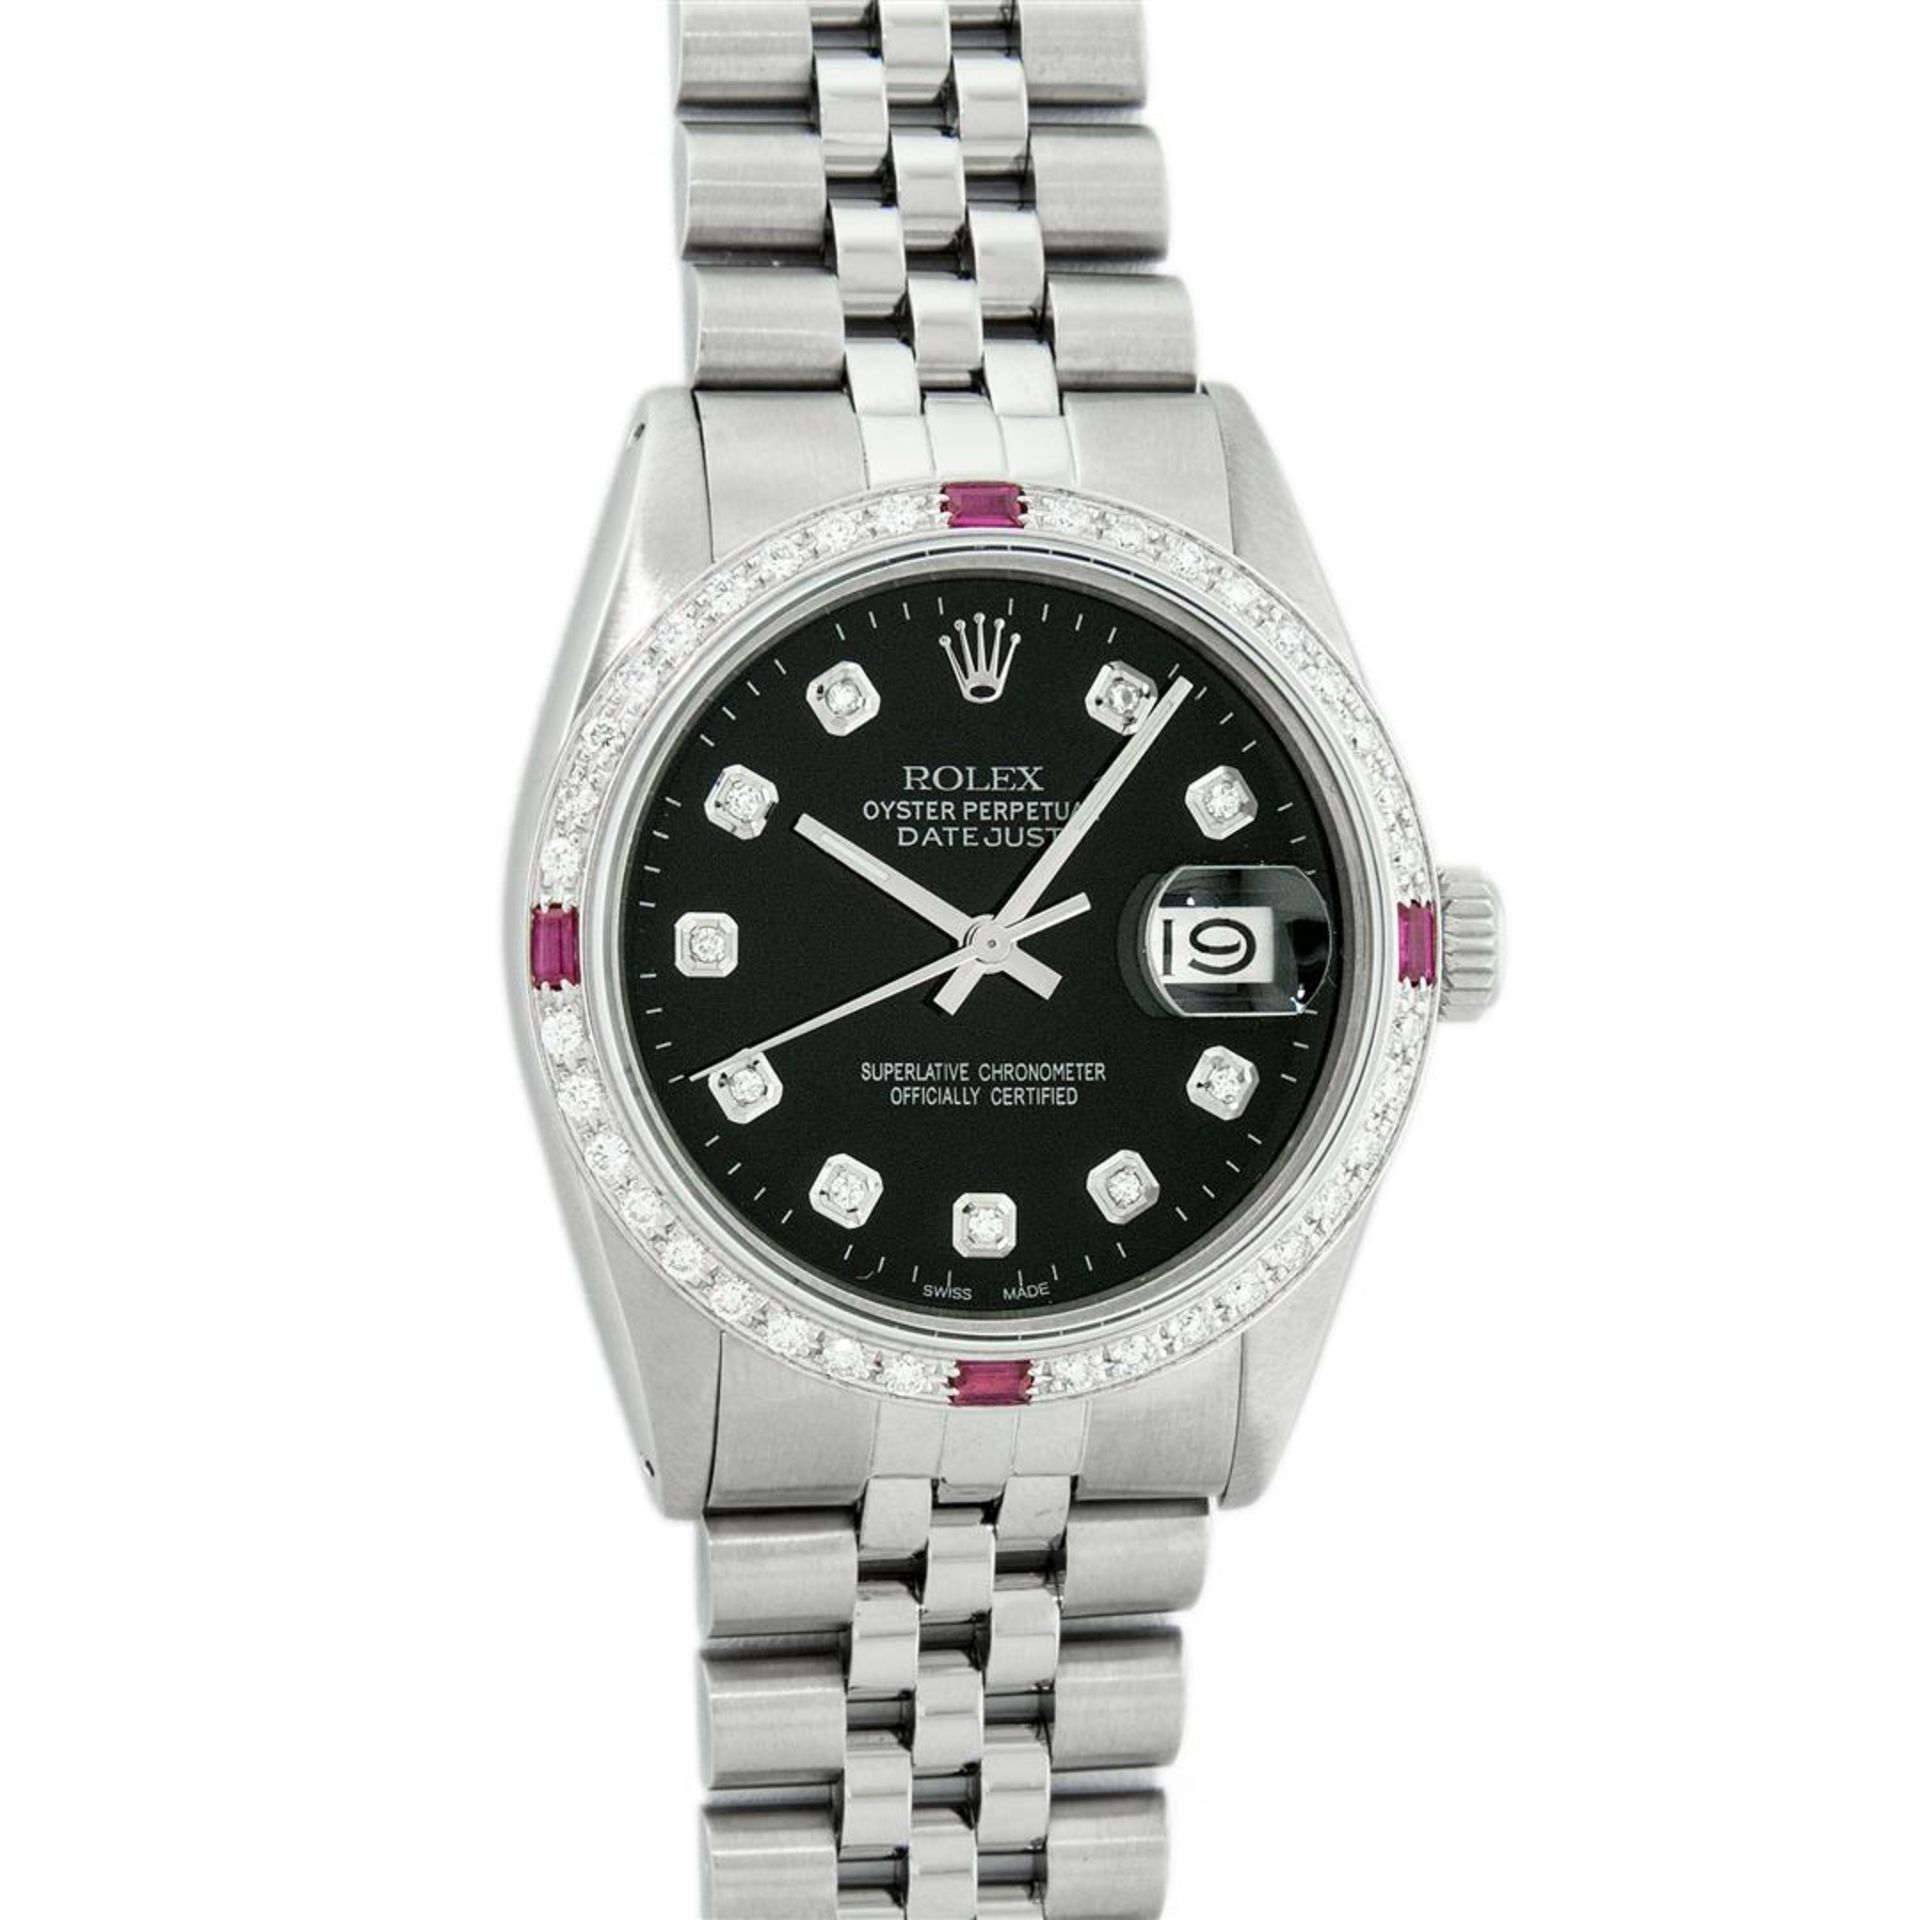 Rolex Mens Stainless Steel Black Diamond & Ruby 36MM Datejust Wristwatch Oyster - Image 2 of 9